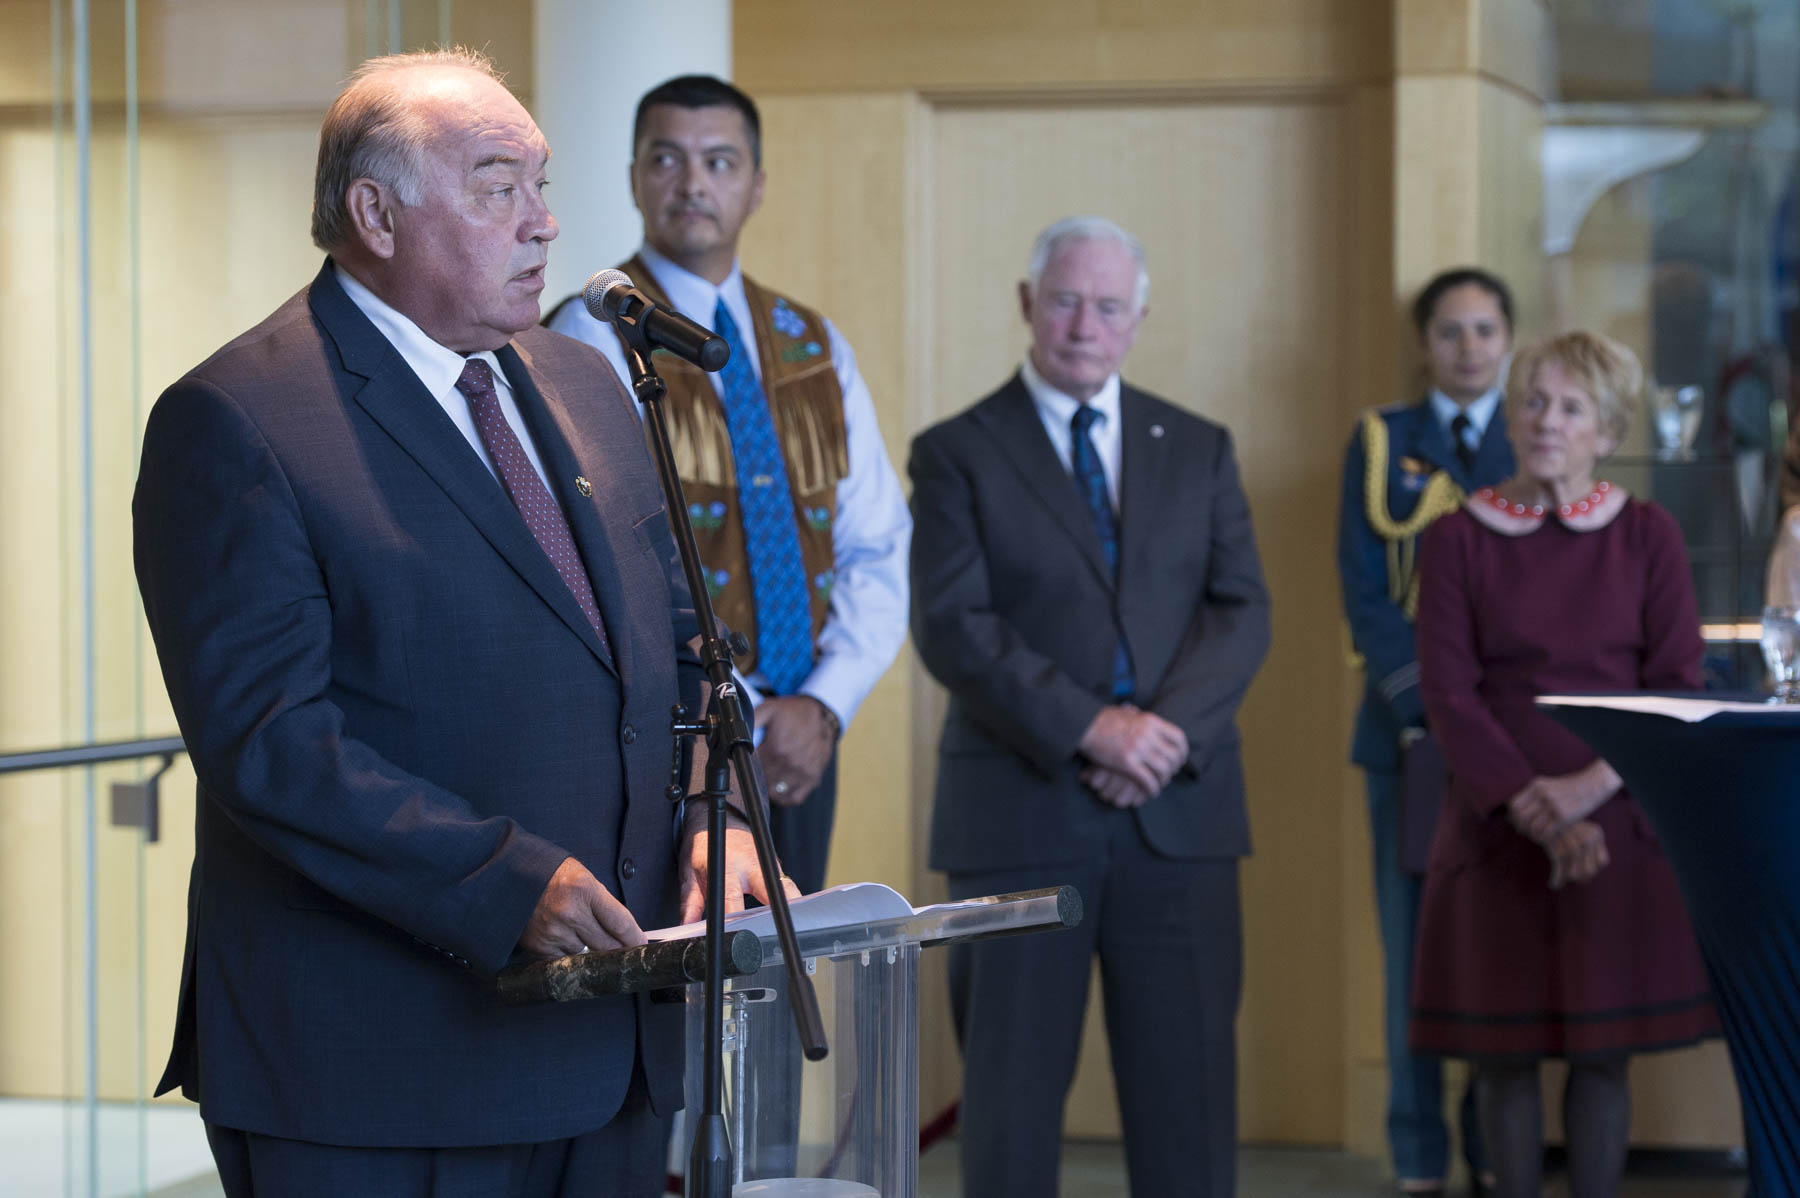 The Honourable Bob McLeod, Premier of the Northwest Territories delivered remarks during the reception.